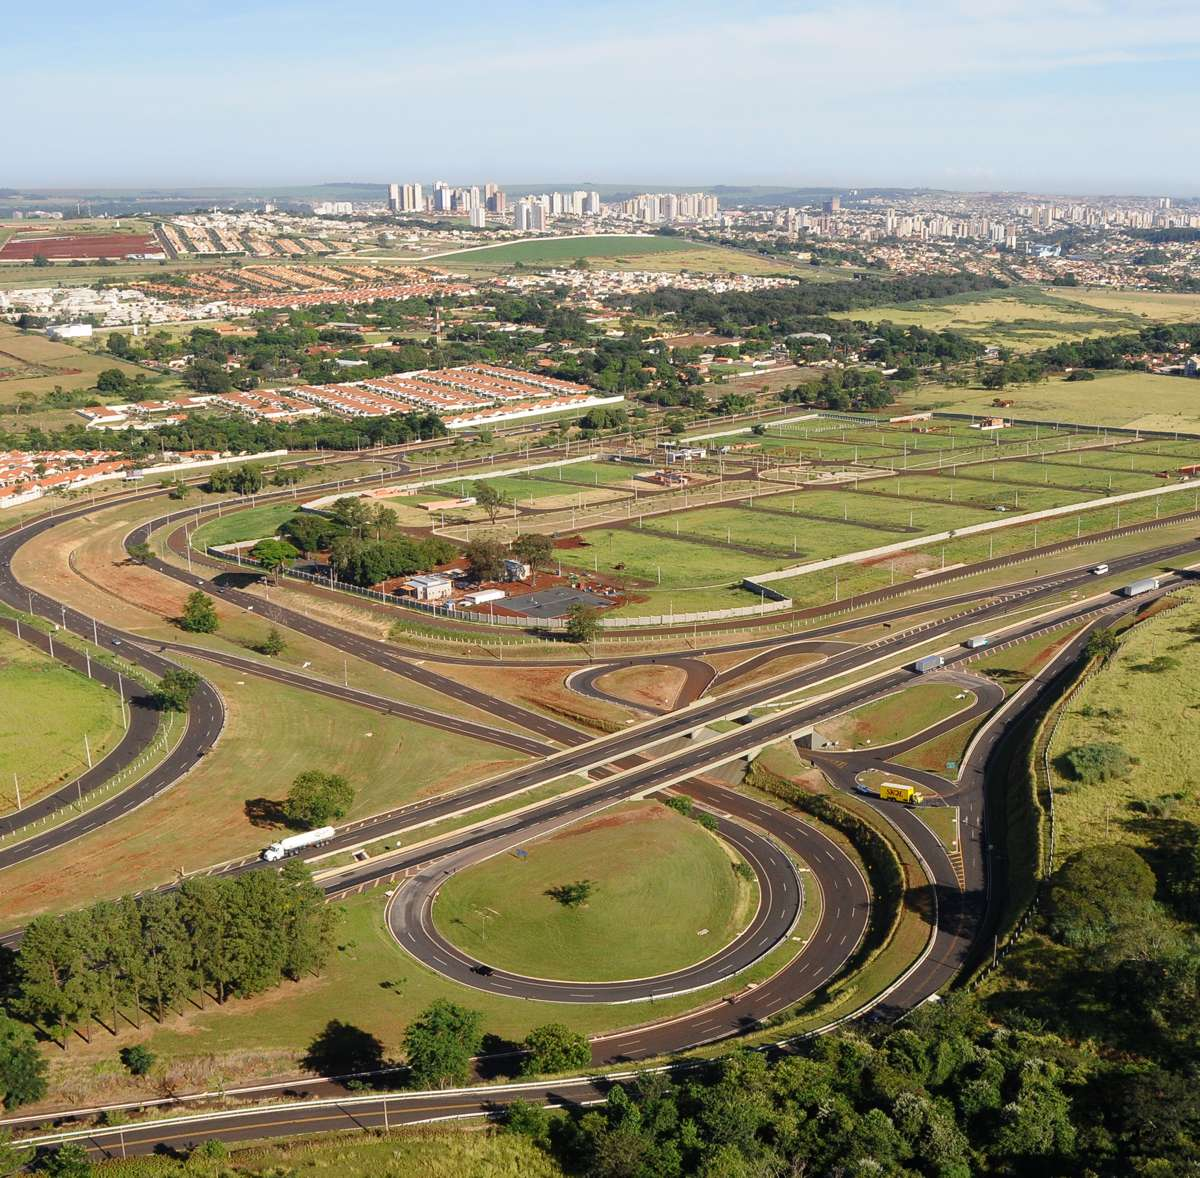 Arteris, Abertis' subsidiary in Brazil wins the 30 year concession for Rodovias dos Calçados